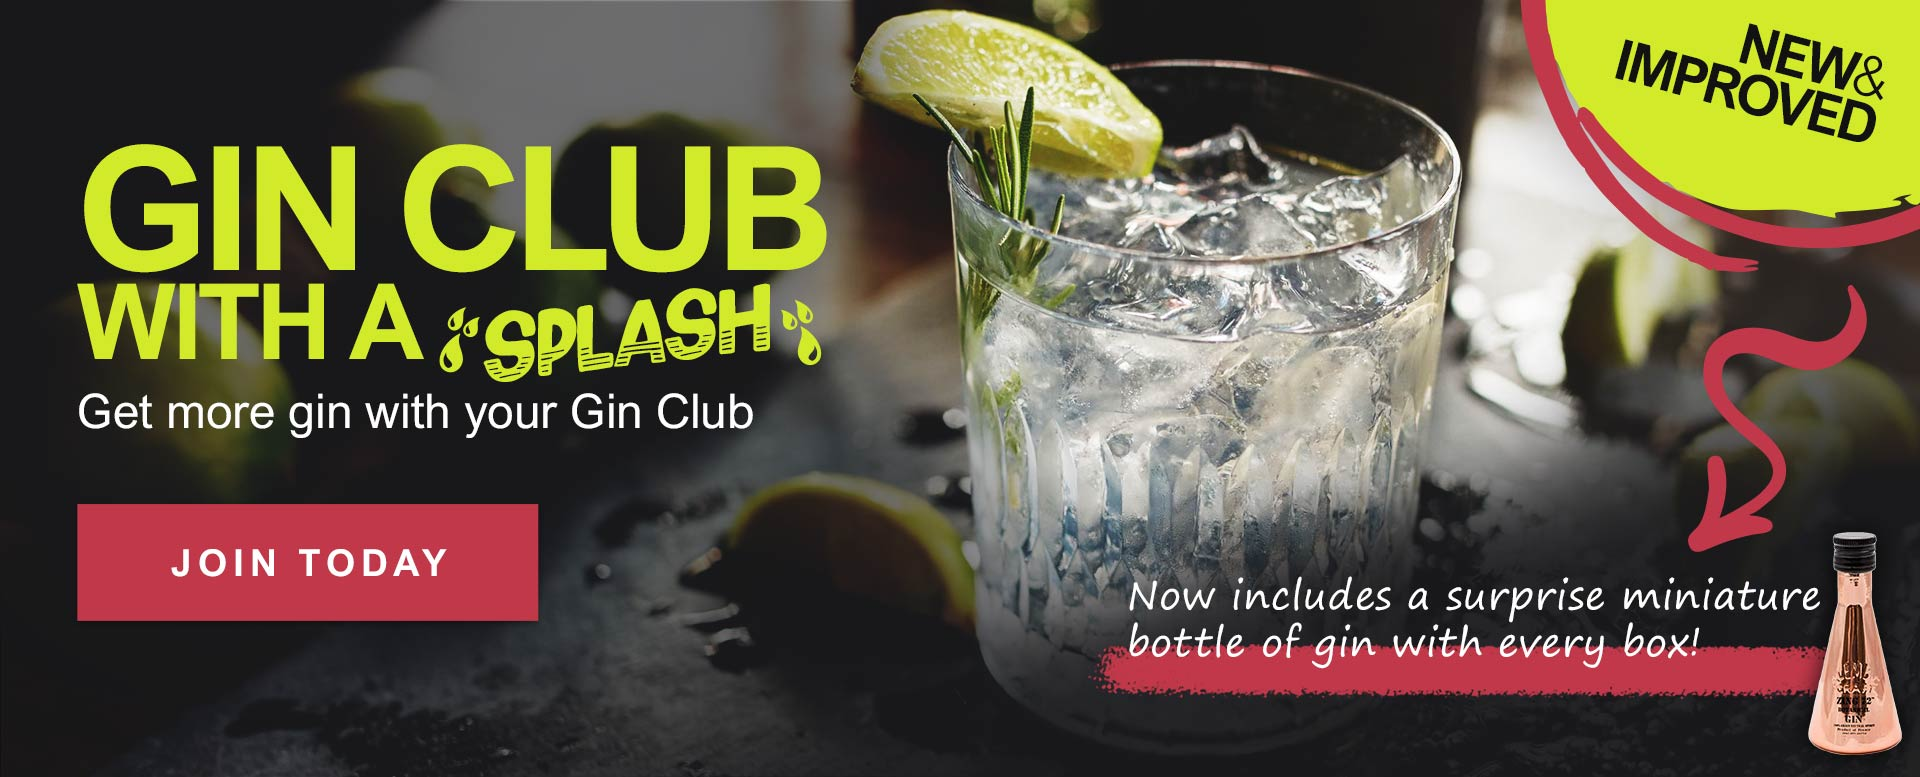 Join the Gin Club with a Splash today